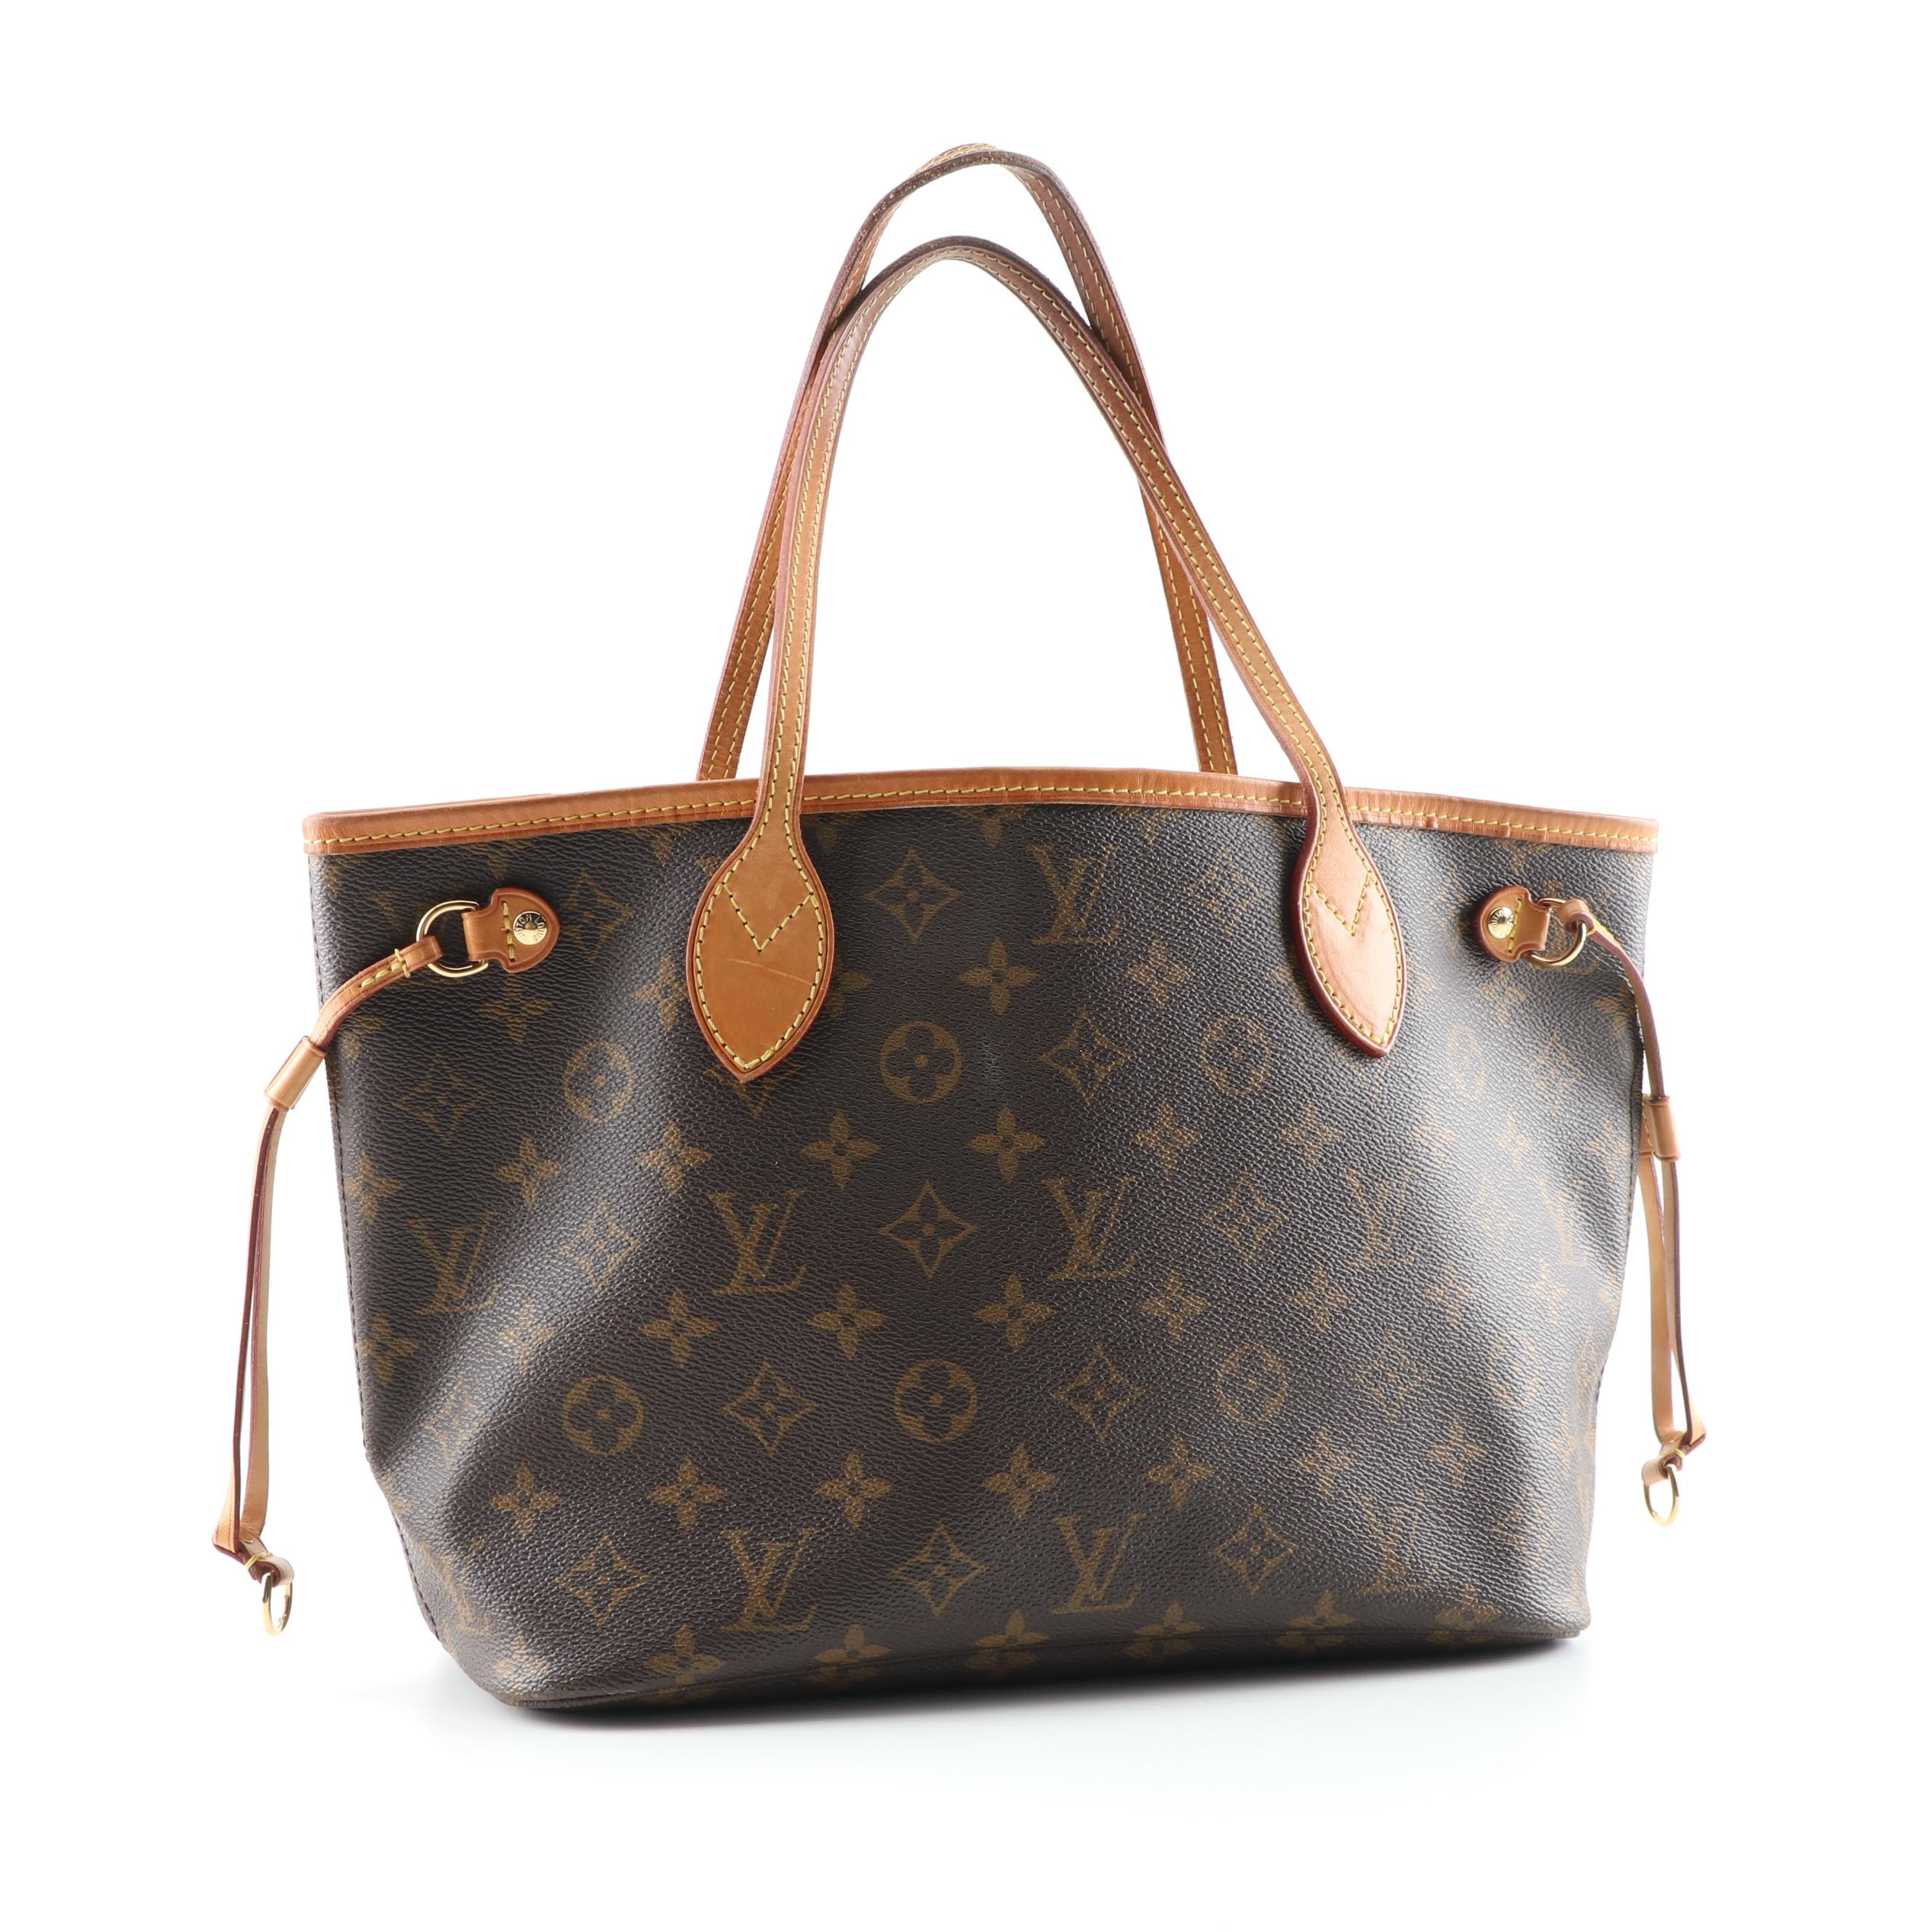 2010 Louis Vuitton Paris Monogram Canvas Neverfull NM PM Tote